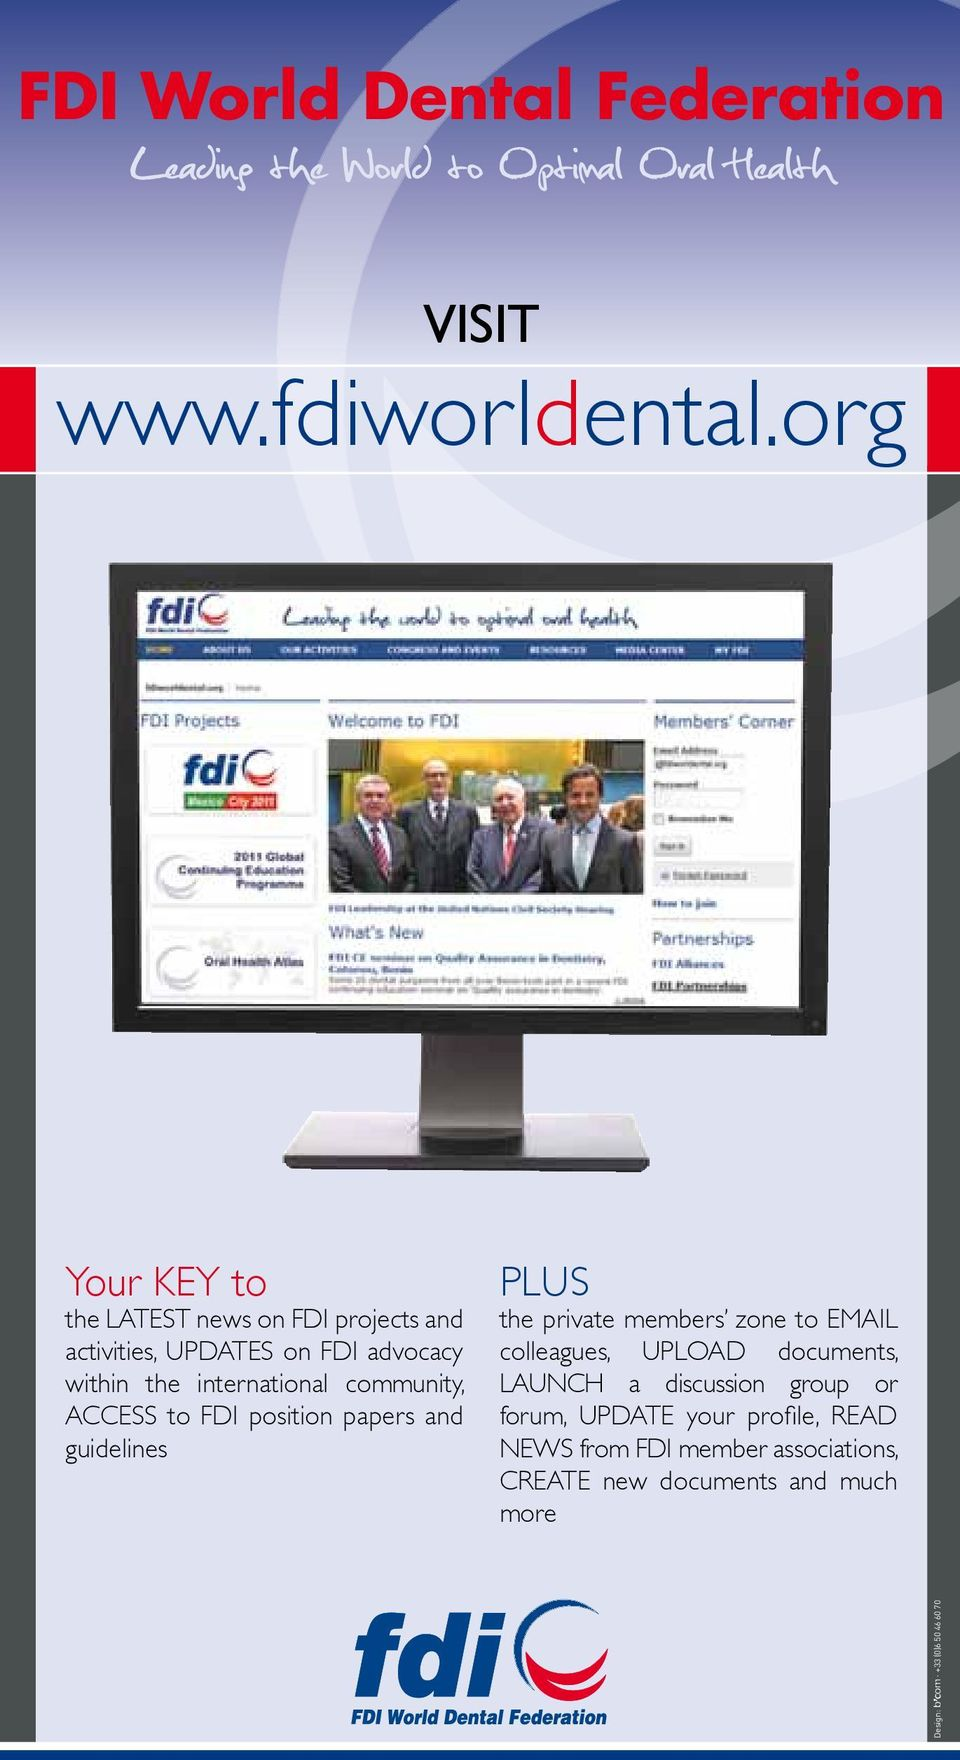 ACCESS to FDI position papers and guidelines PLUS the private members zone to EMAIL colleagues, UPLOAD documents, LAUNCH a